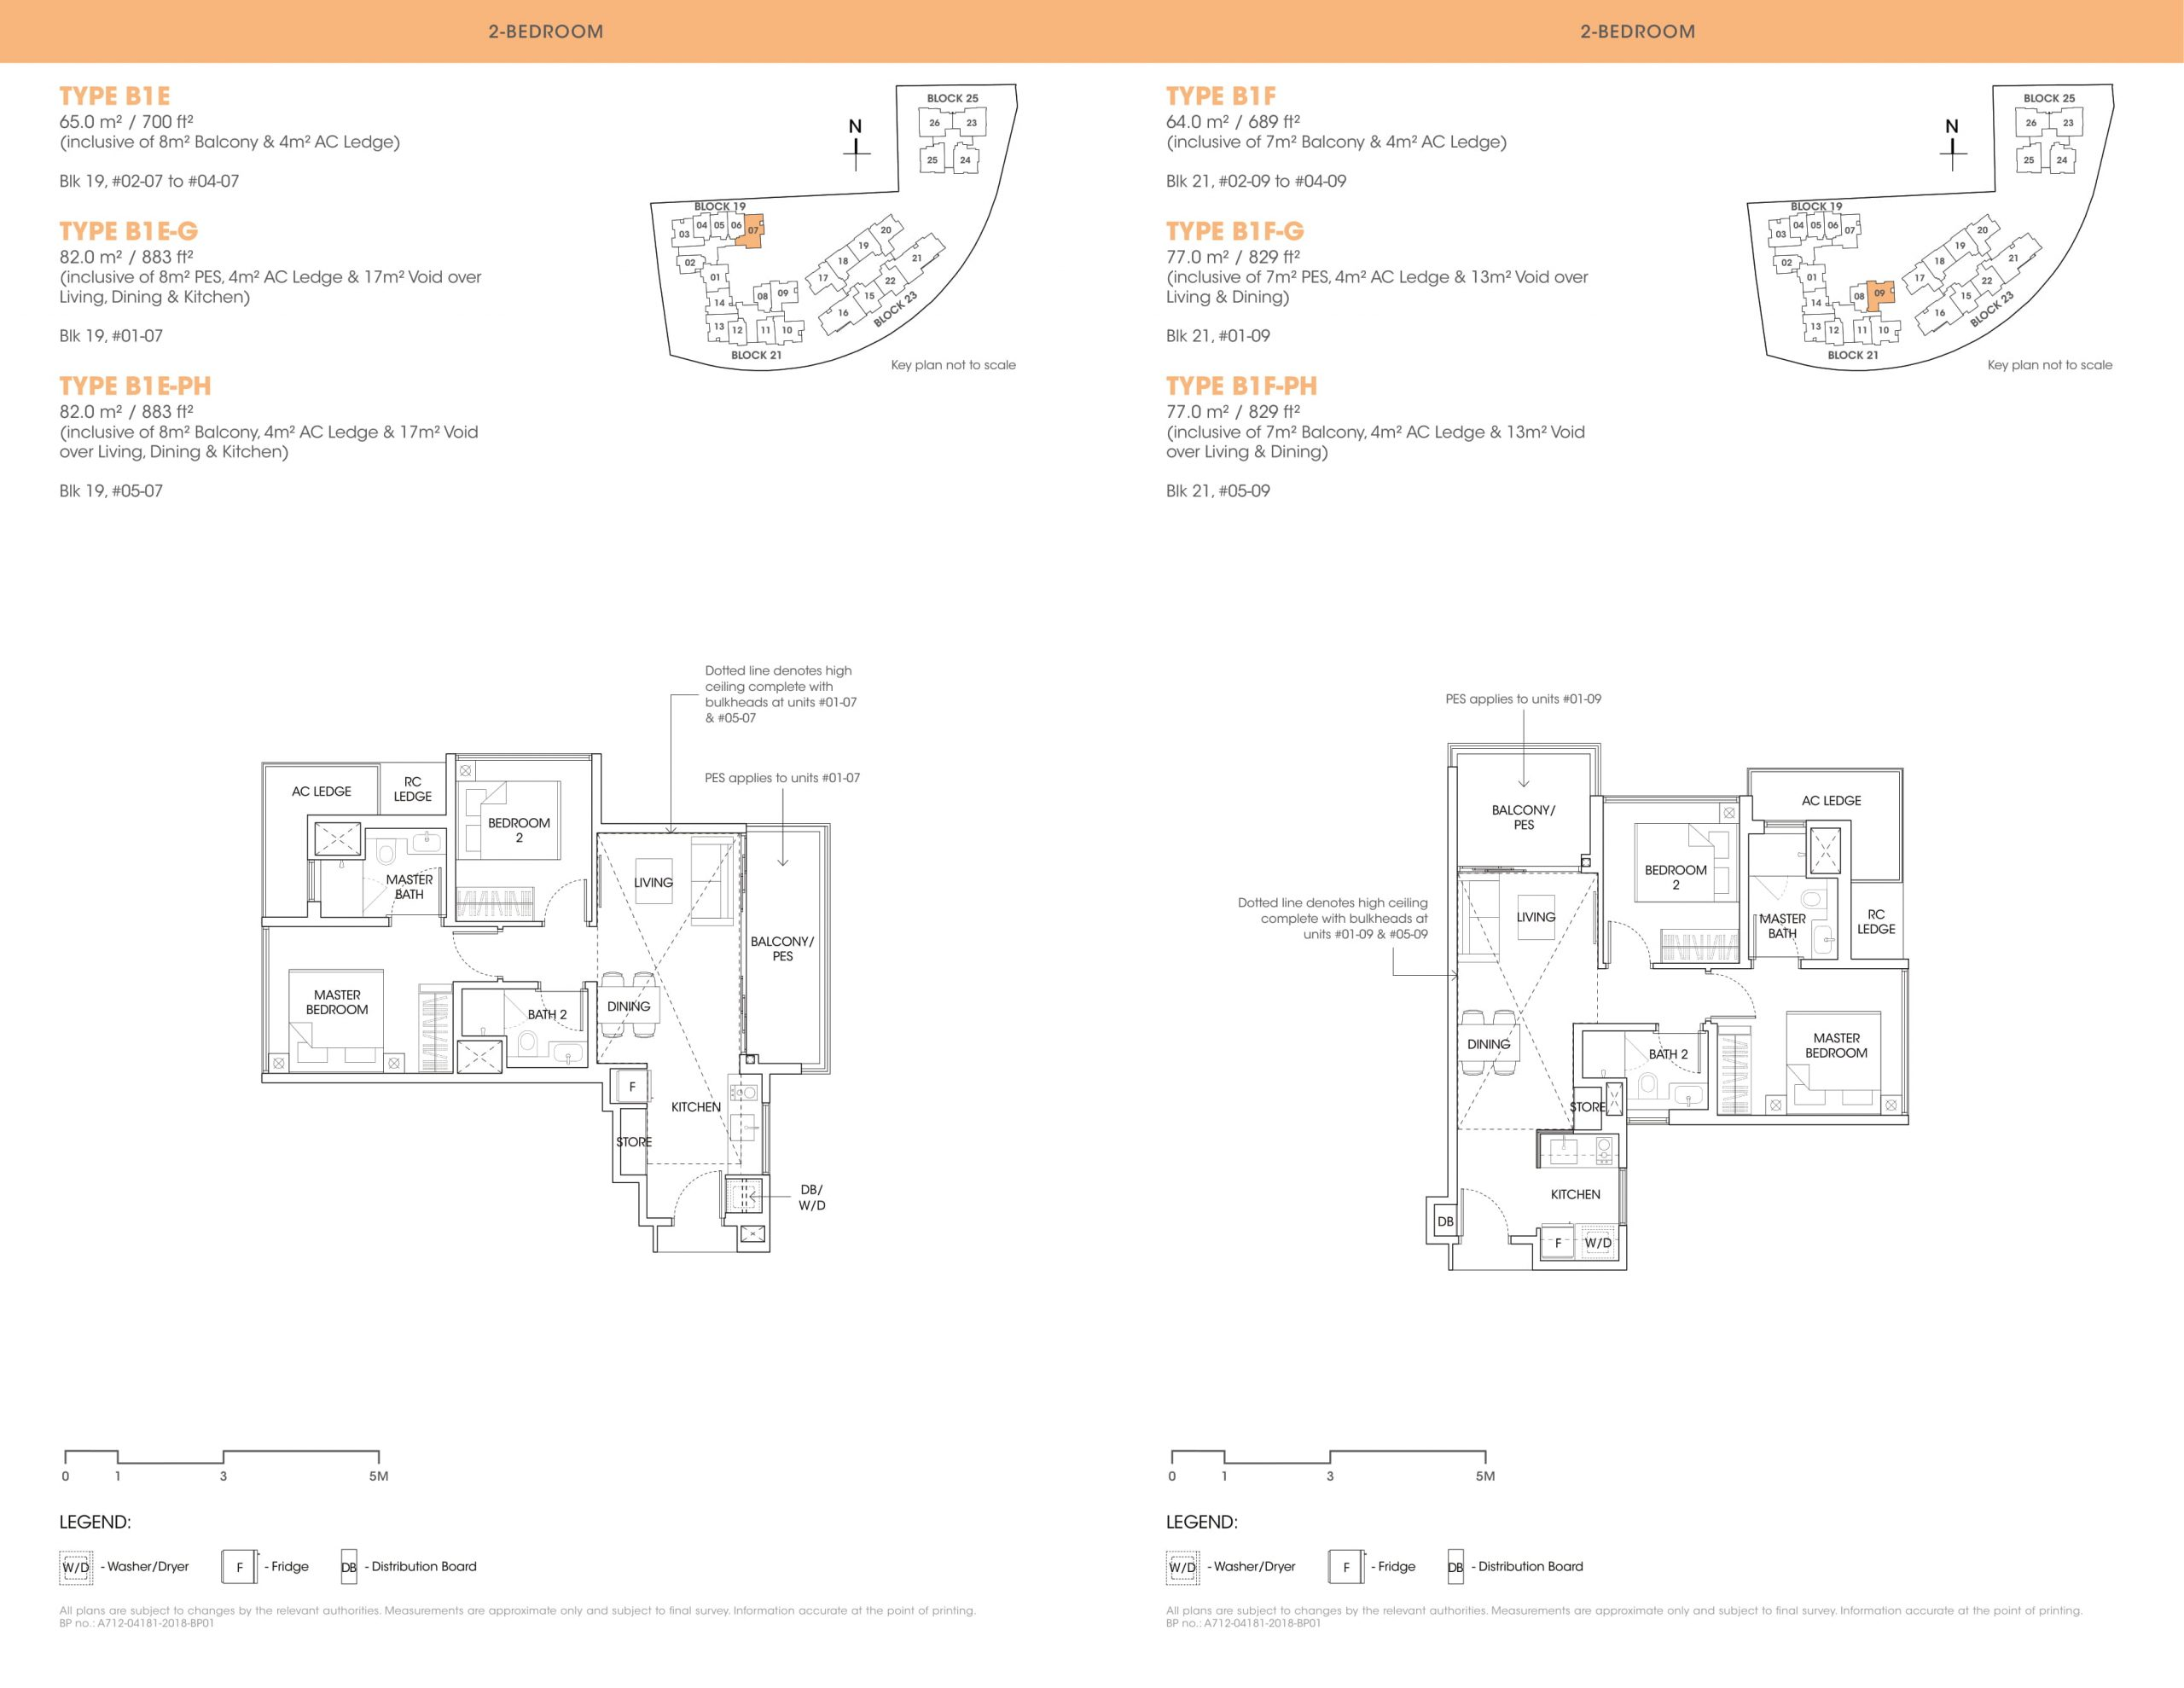 The Antares two-bedroom floor plan